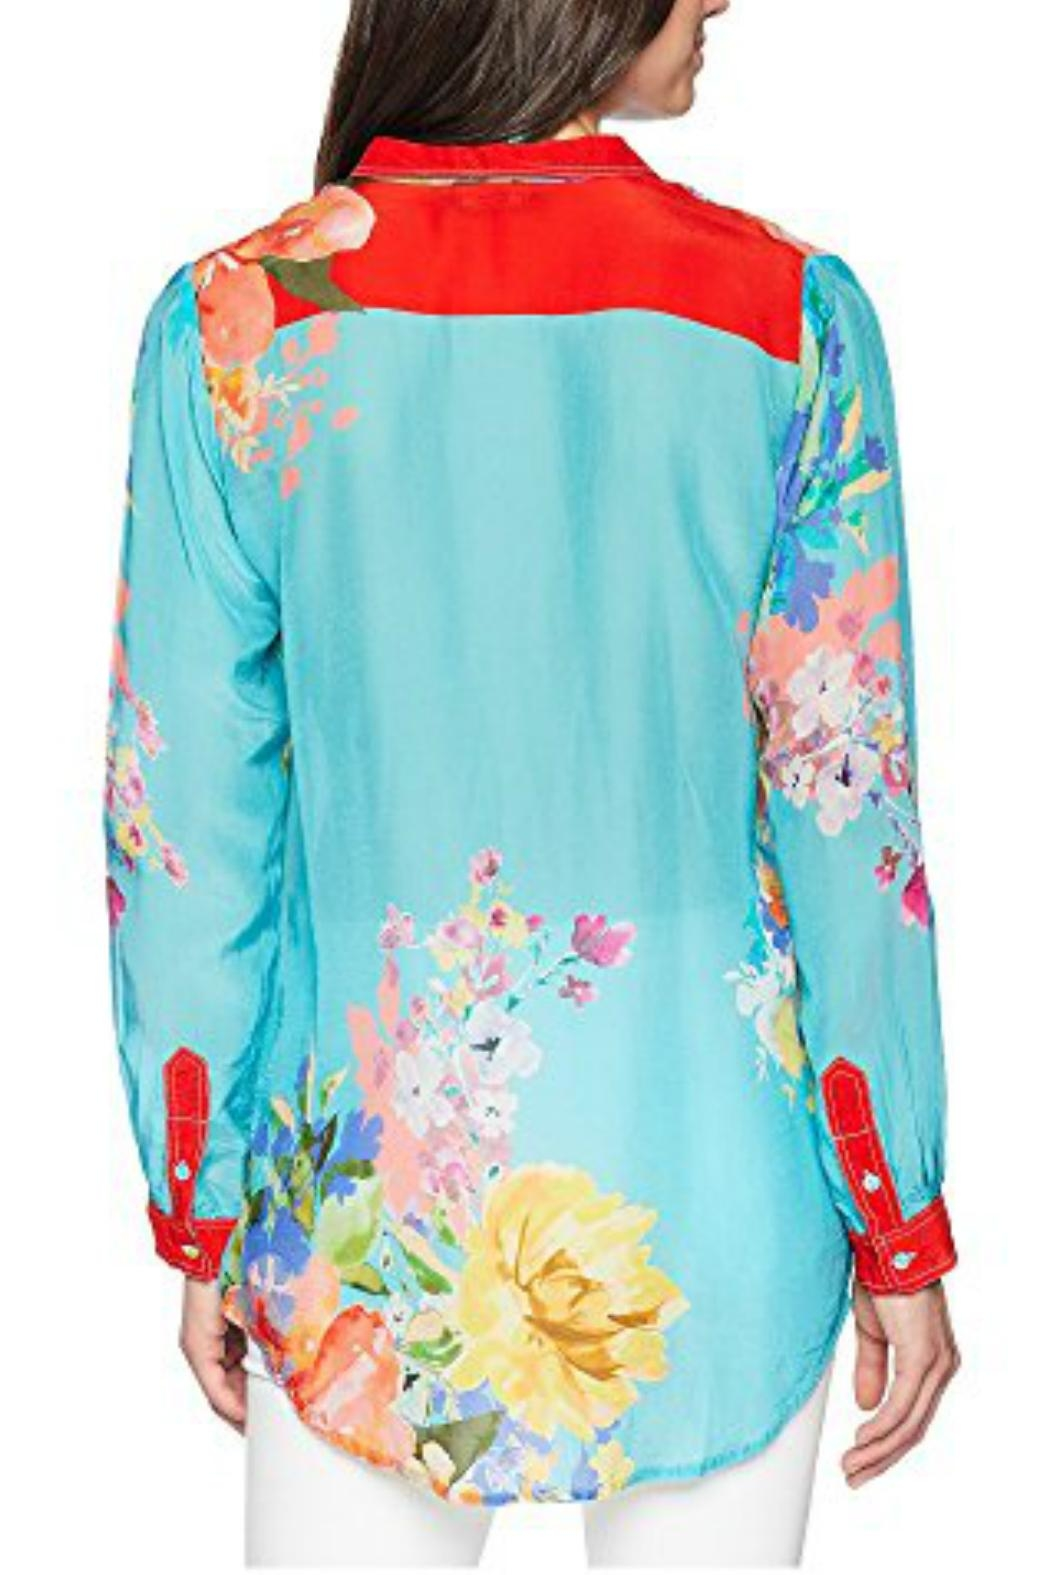 Johnny Was Tropical Print Blouse - Front Full Image